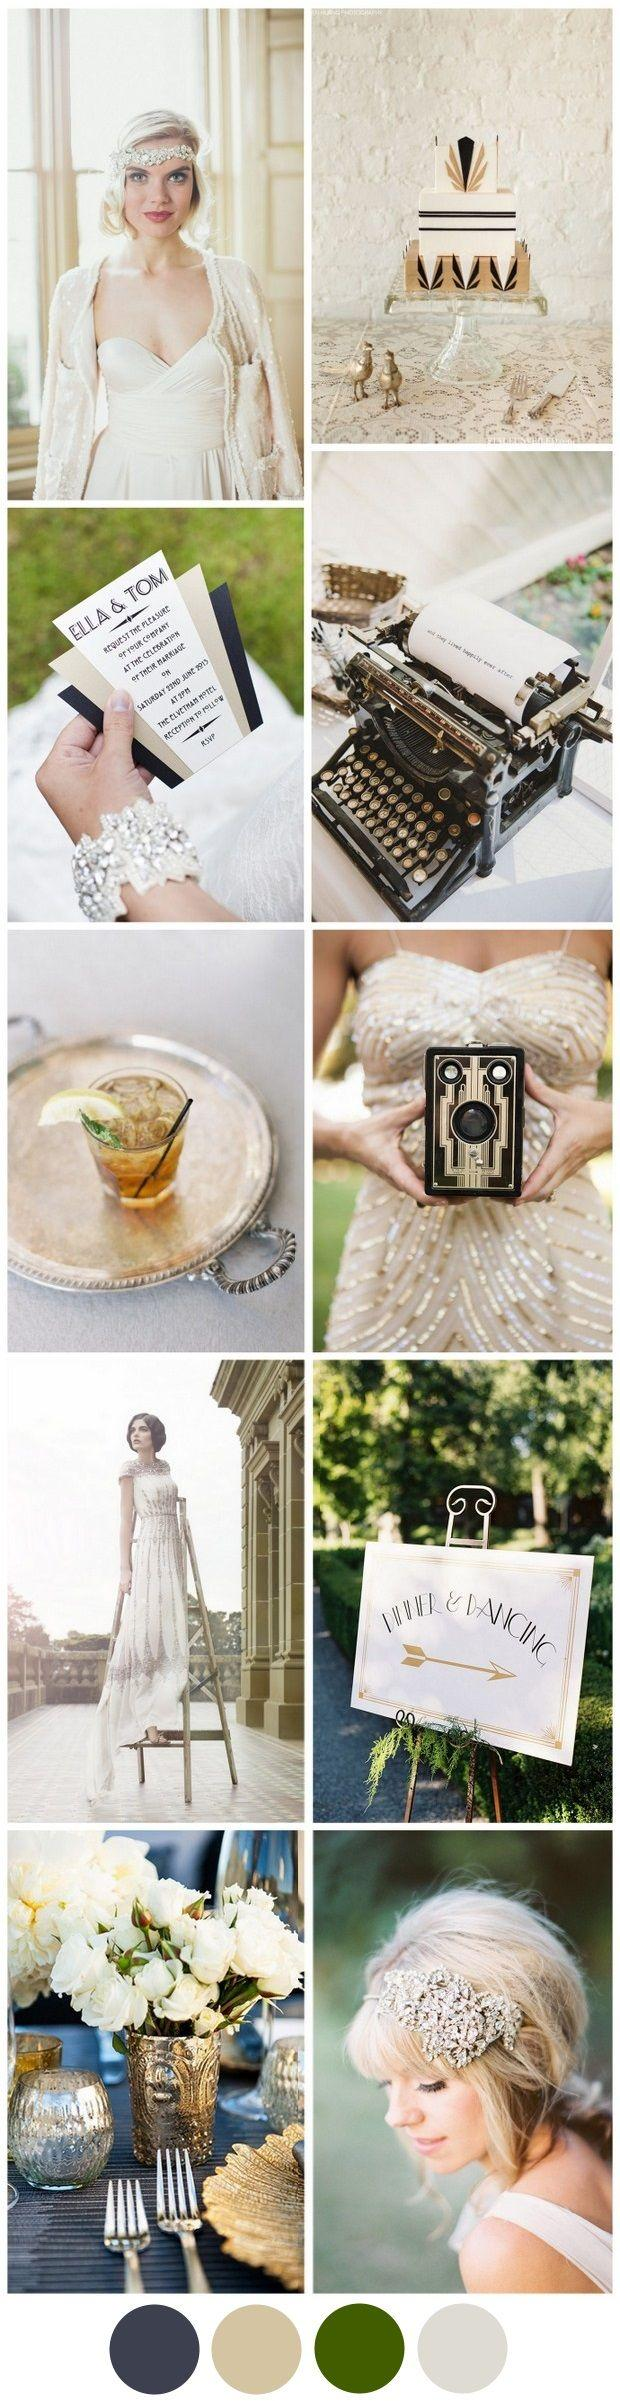 Свадьба - Channeling The Great Gatsby: Your Art Deco Wedding Theme